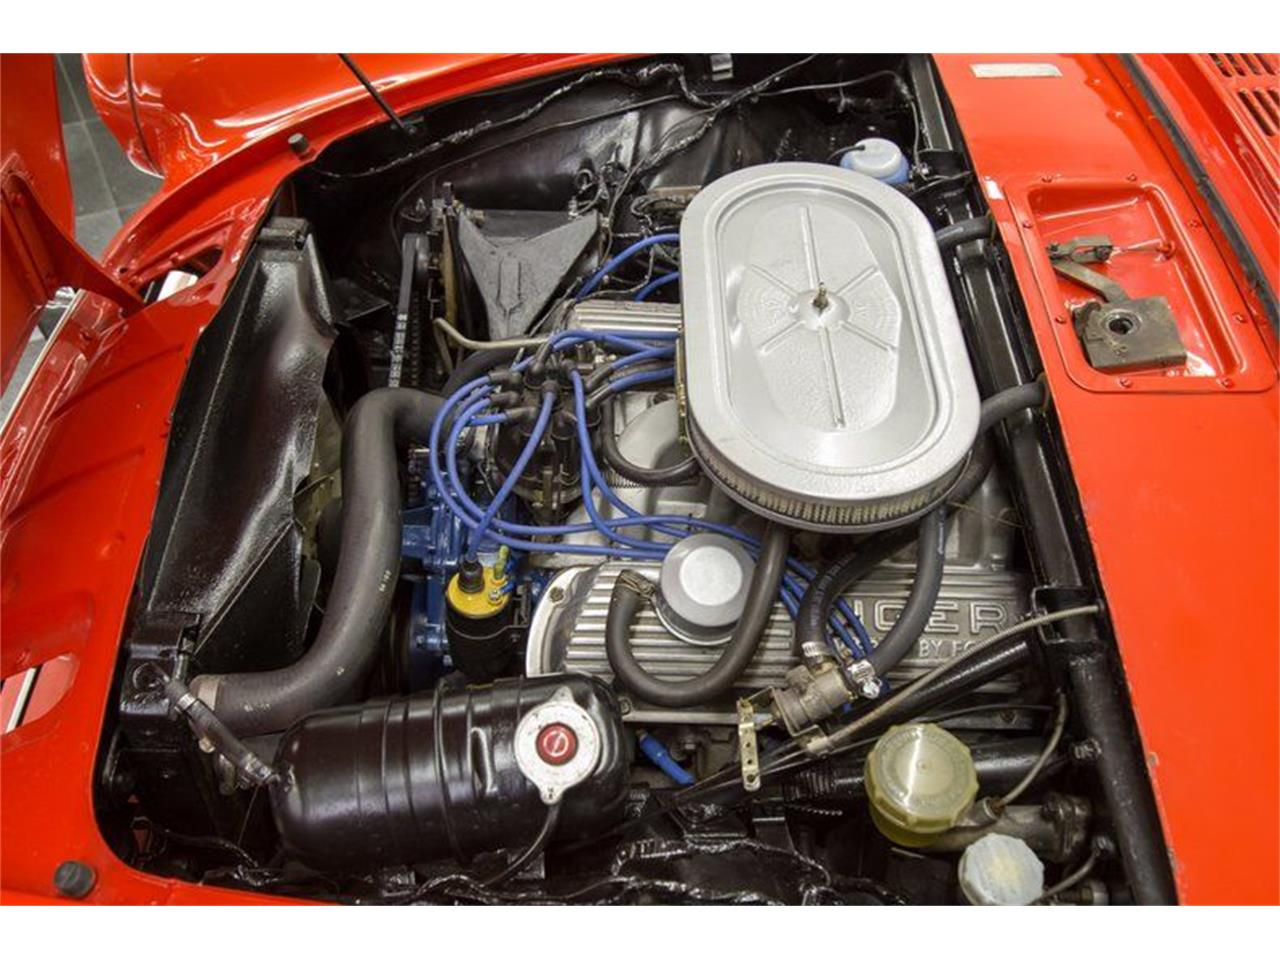 1966 Sunbeam Tiger for sale in St. Louis, MO – photo 68